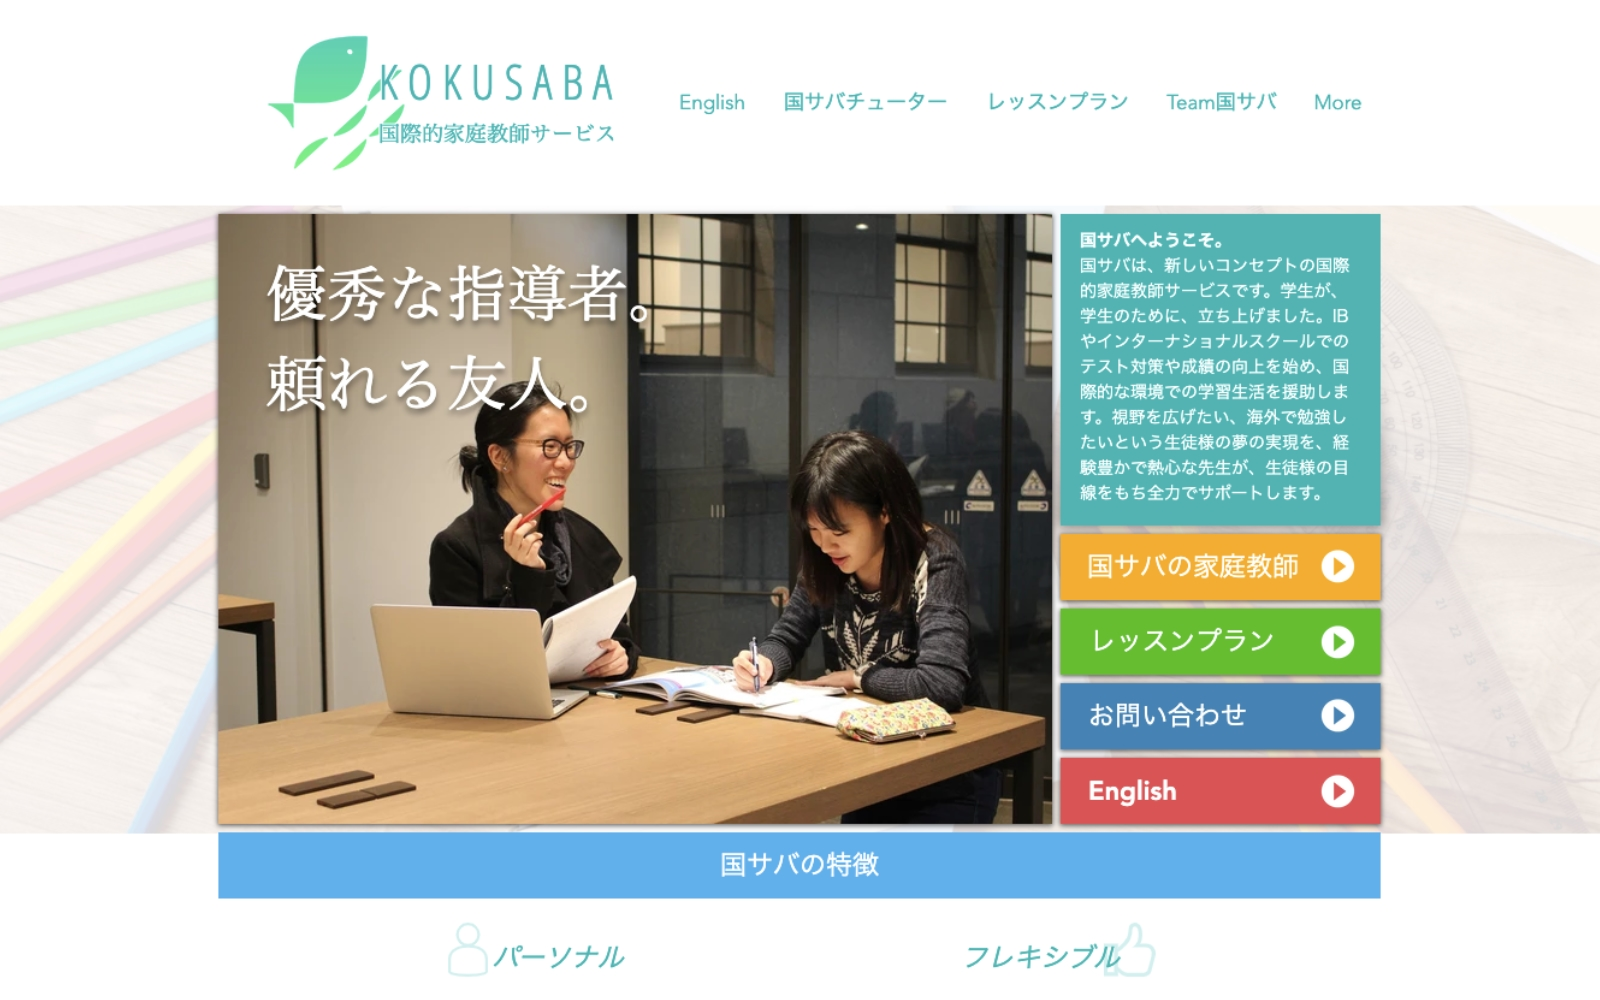 Kokusaba: More Than Just International Tutoring